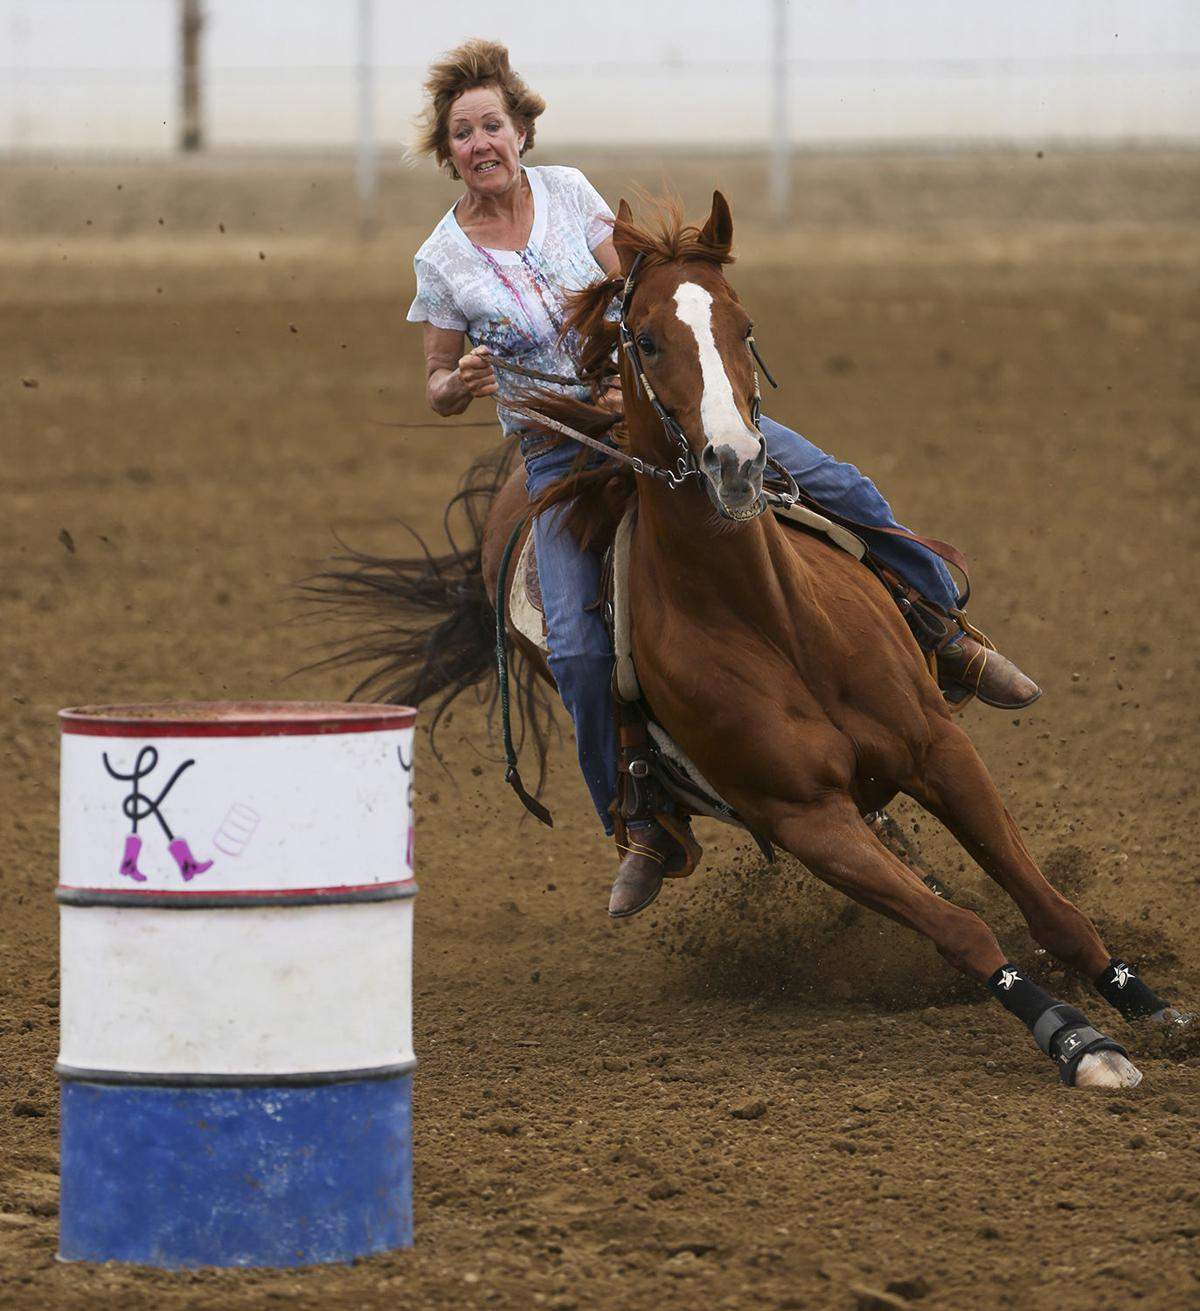 Mary Vroman looks for her turn around the first barrel during her run